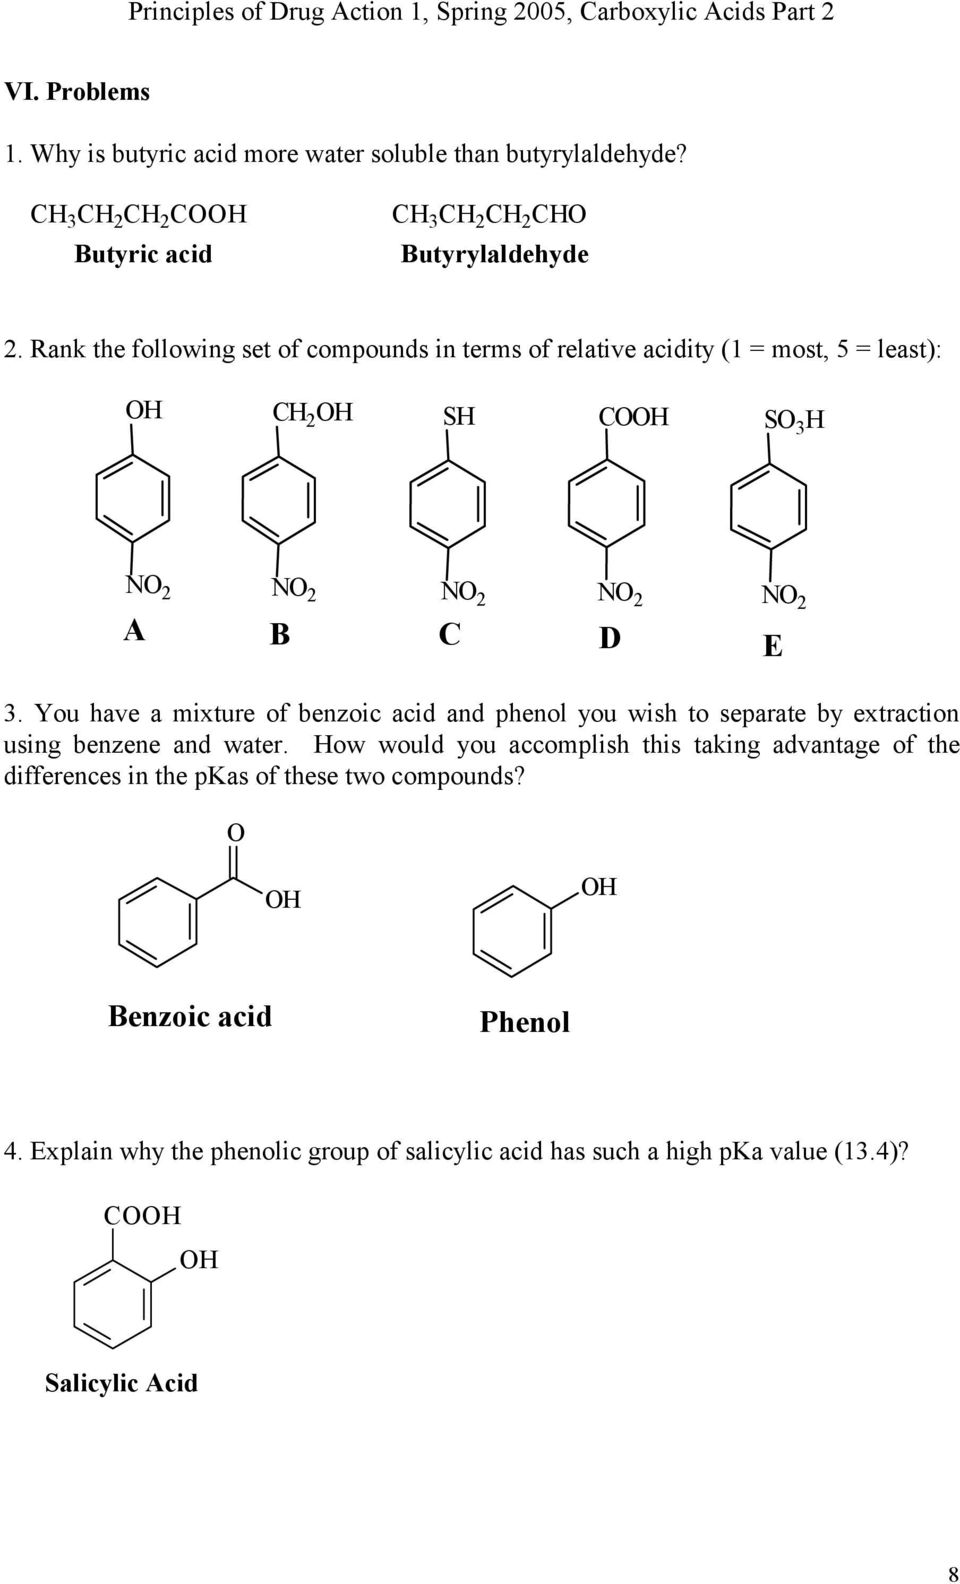 ank the following set of compounds in terms of relative acidity (1 = most, 5 = least): C 2 C 3 2 2 2 2 2 A B C D E 3.